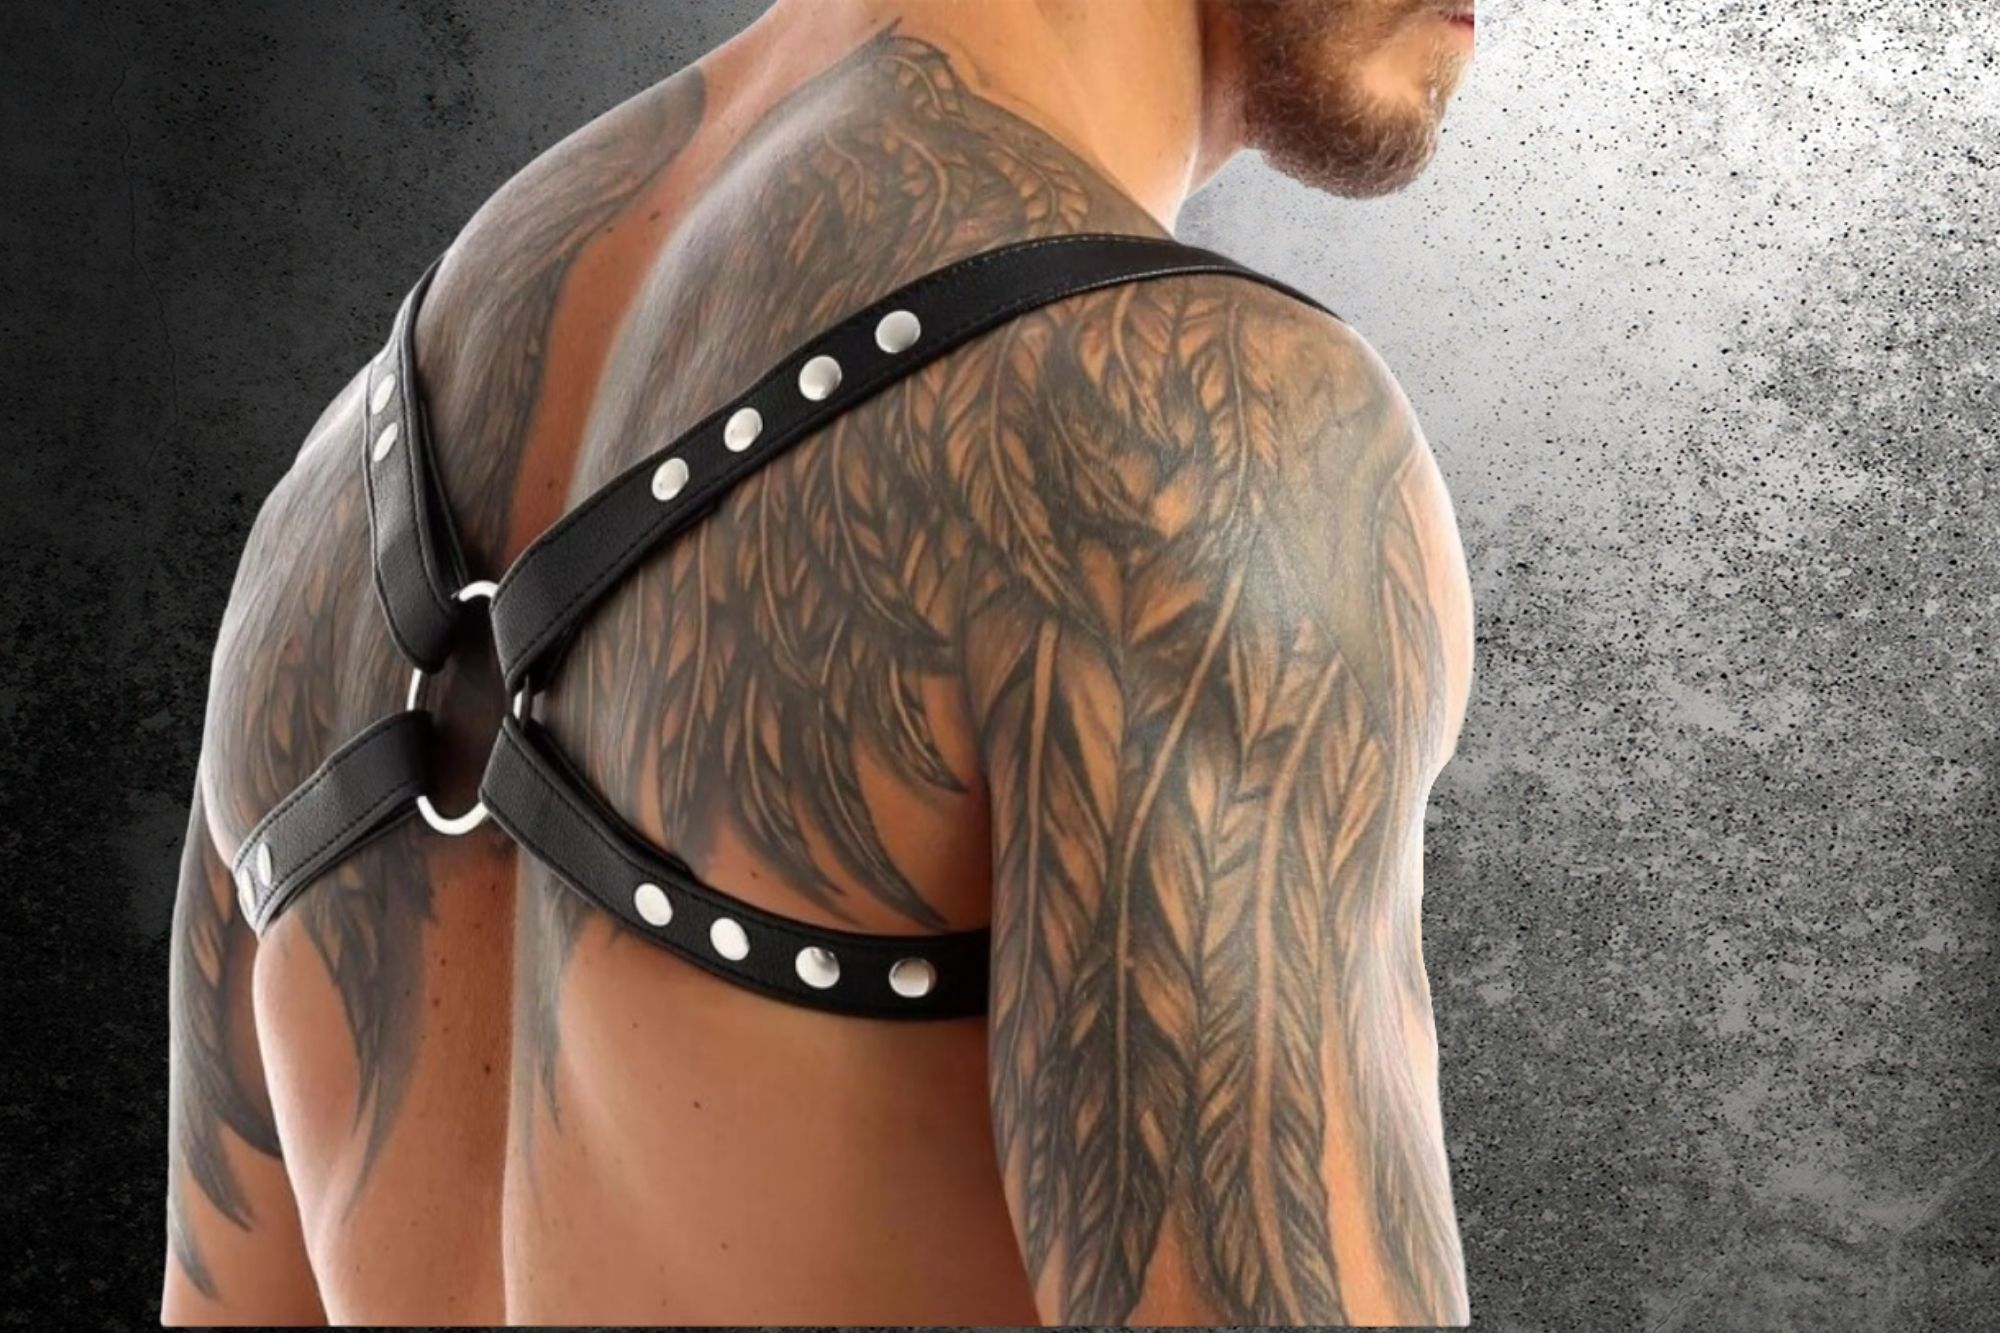 Gay Harness 101: Advice & Recommendations For First-Timers Exploring Boundaries